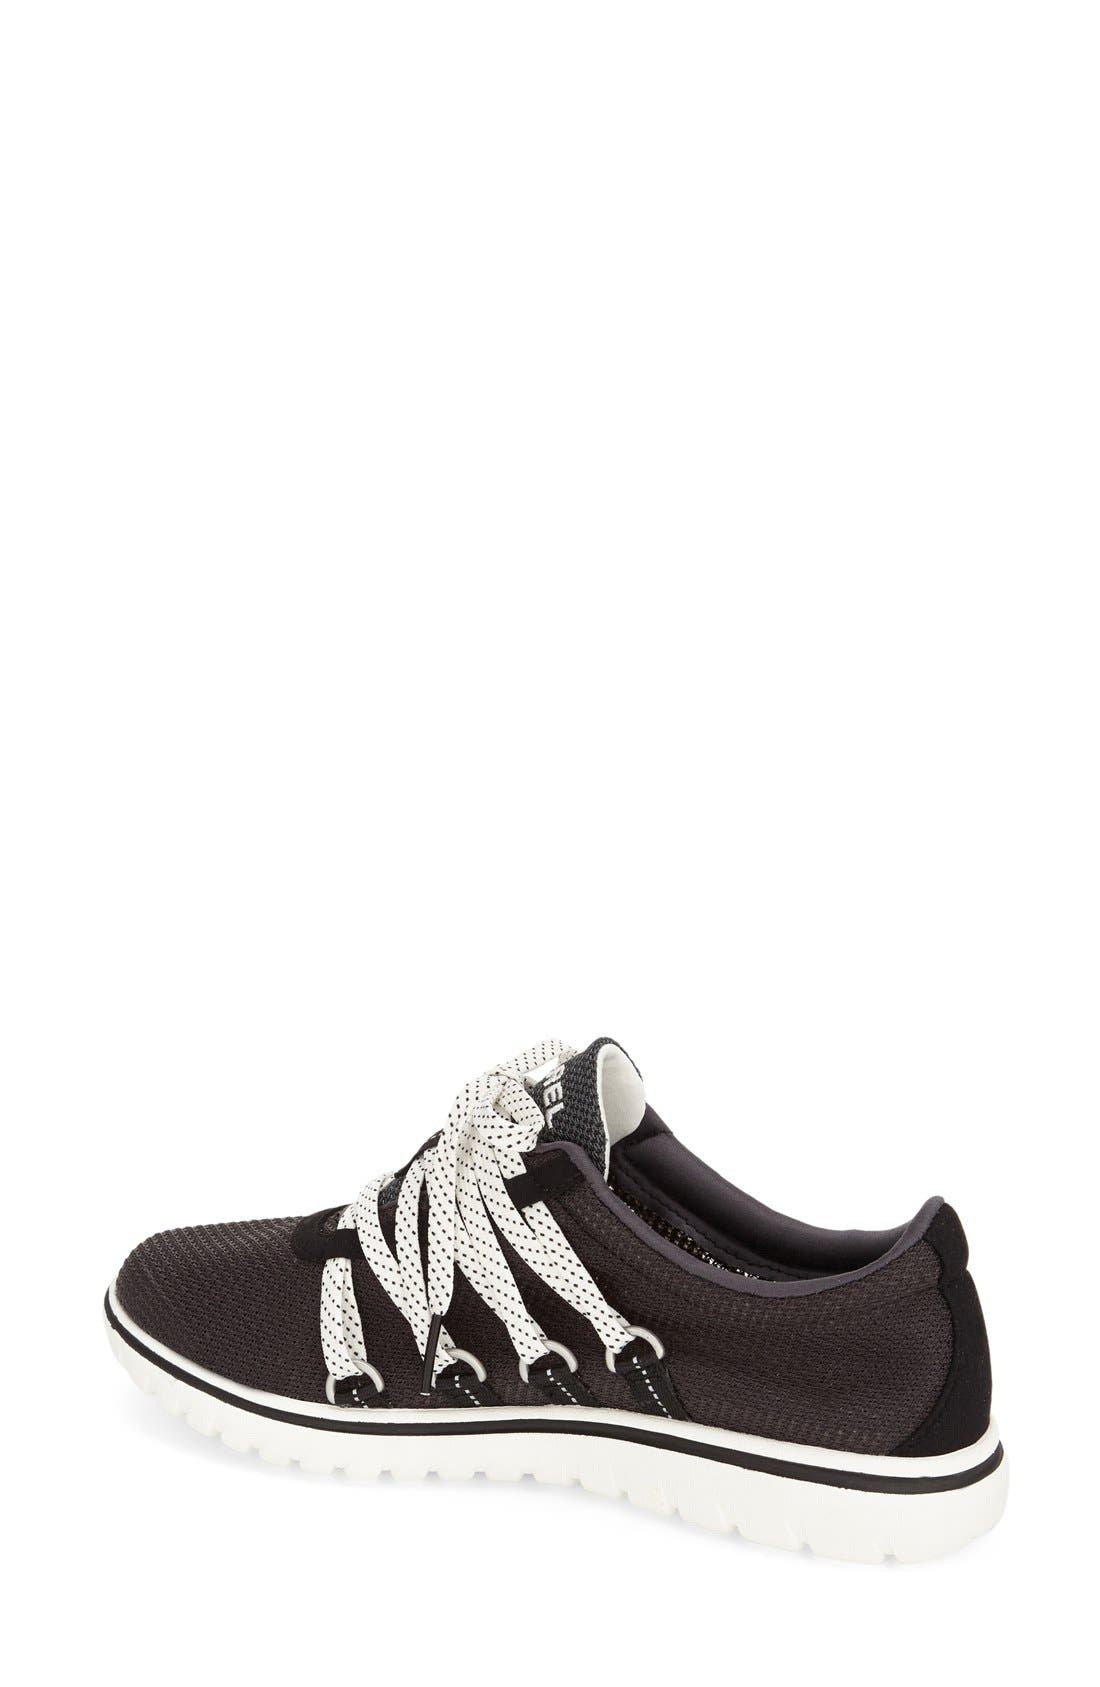 Alternate Image 2  - SOREL 'Tivoli Go' Sneaker (Women)